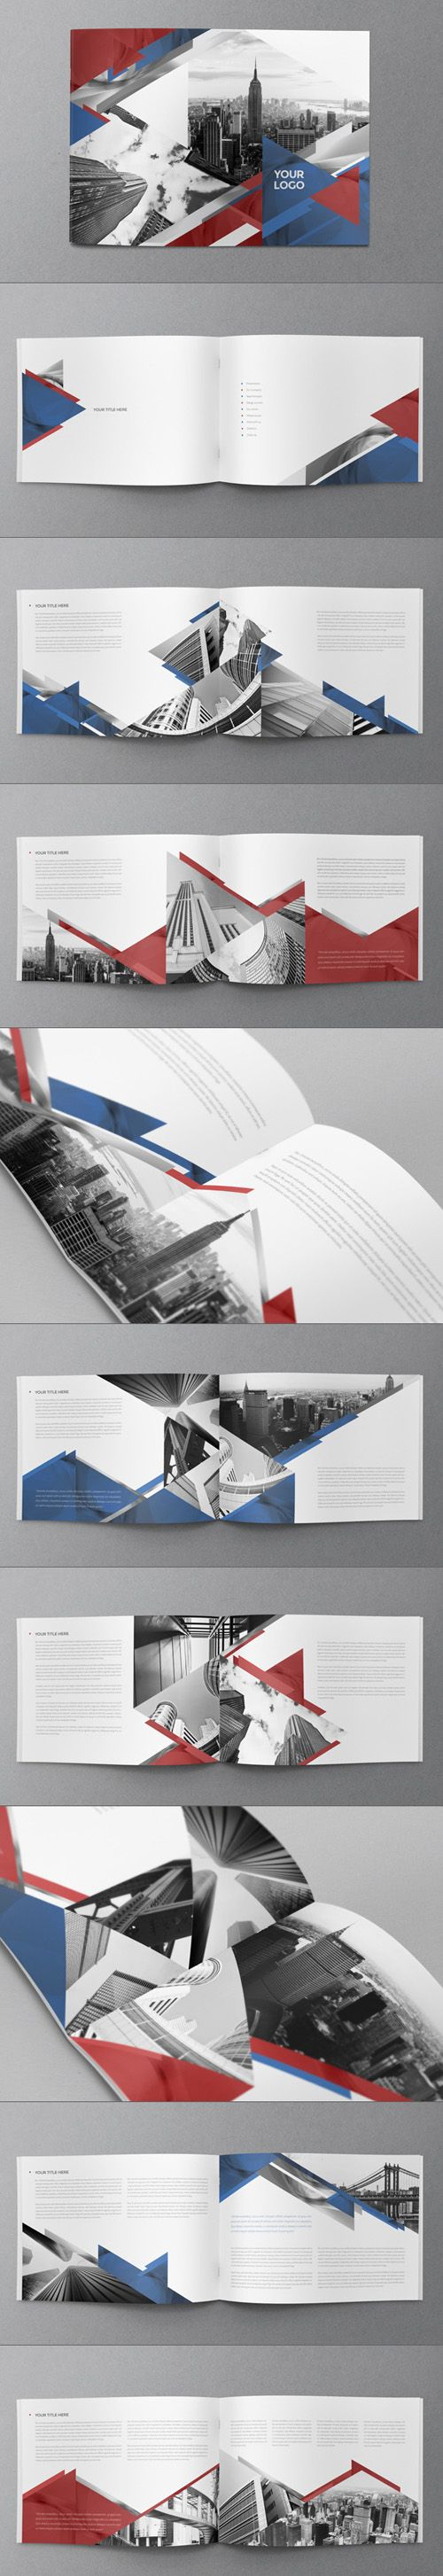 15 Creative Print Ready Business Brochure Designs | Design | Graphic Design Junction//